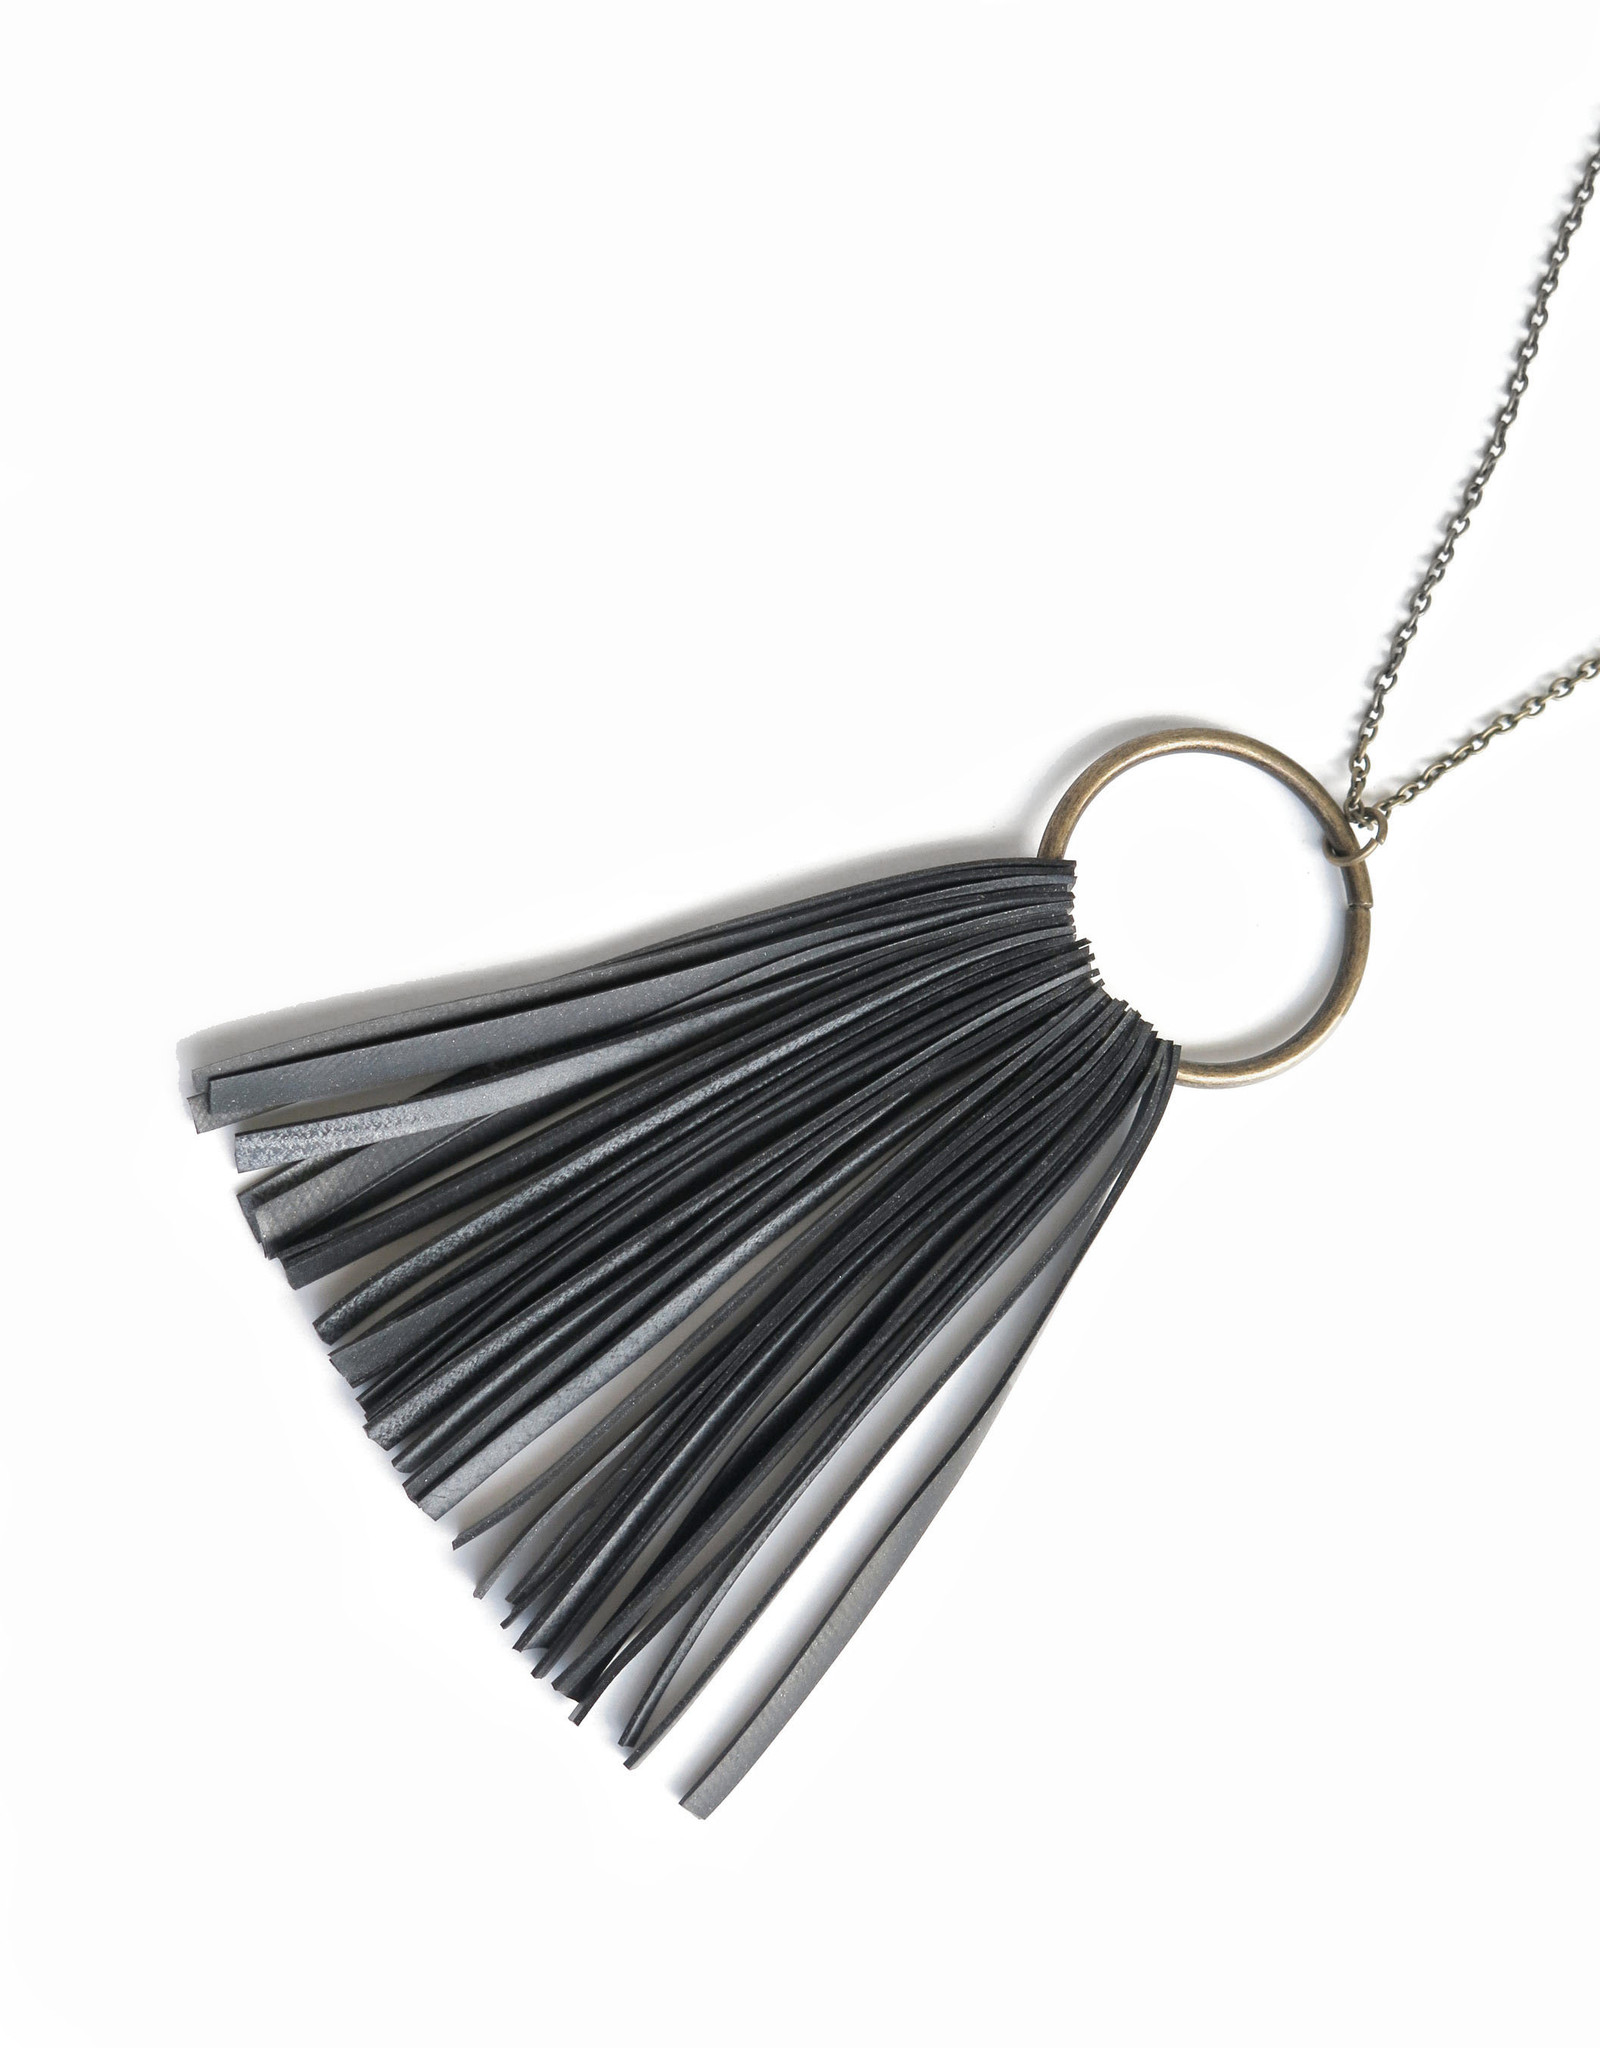 True Partners in Craft Circle Fringe Necklace by True Partners in Craft